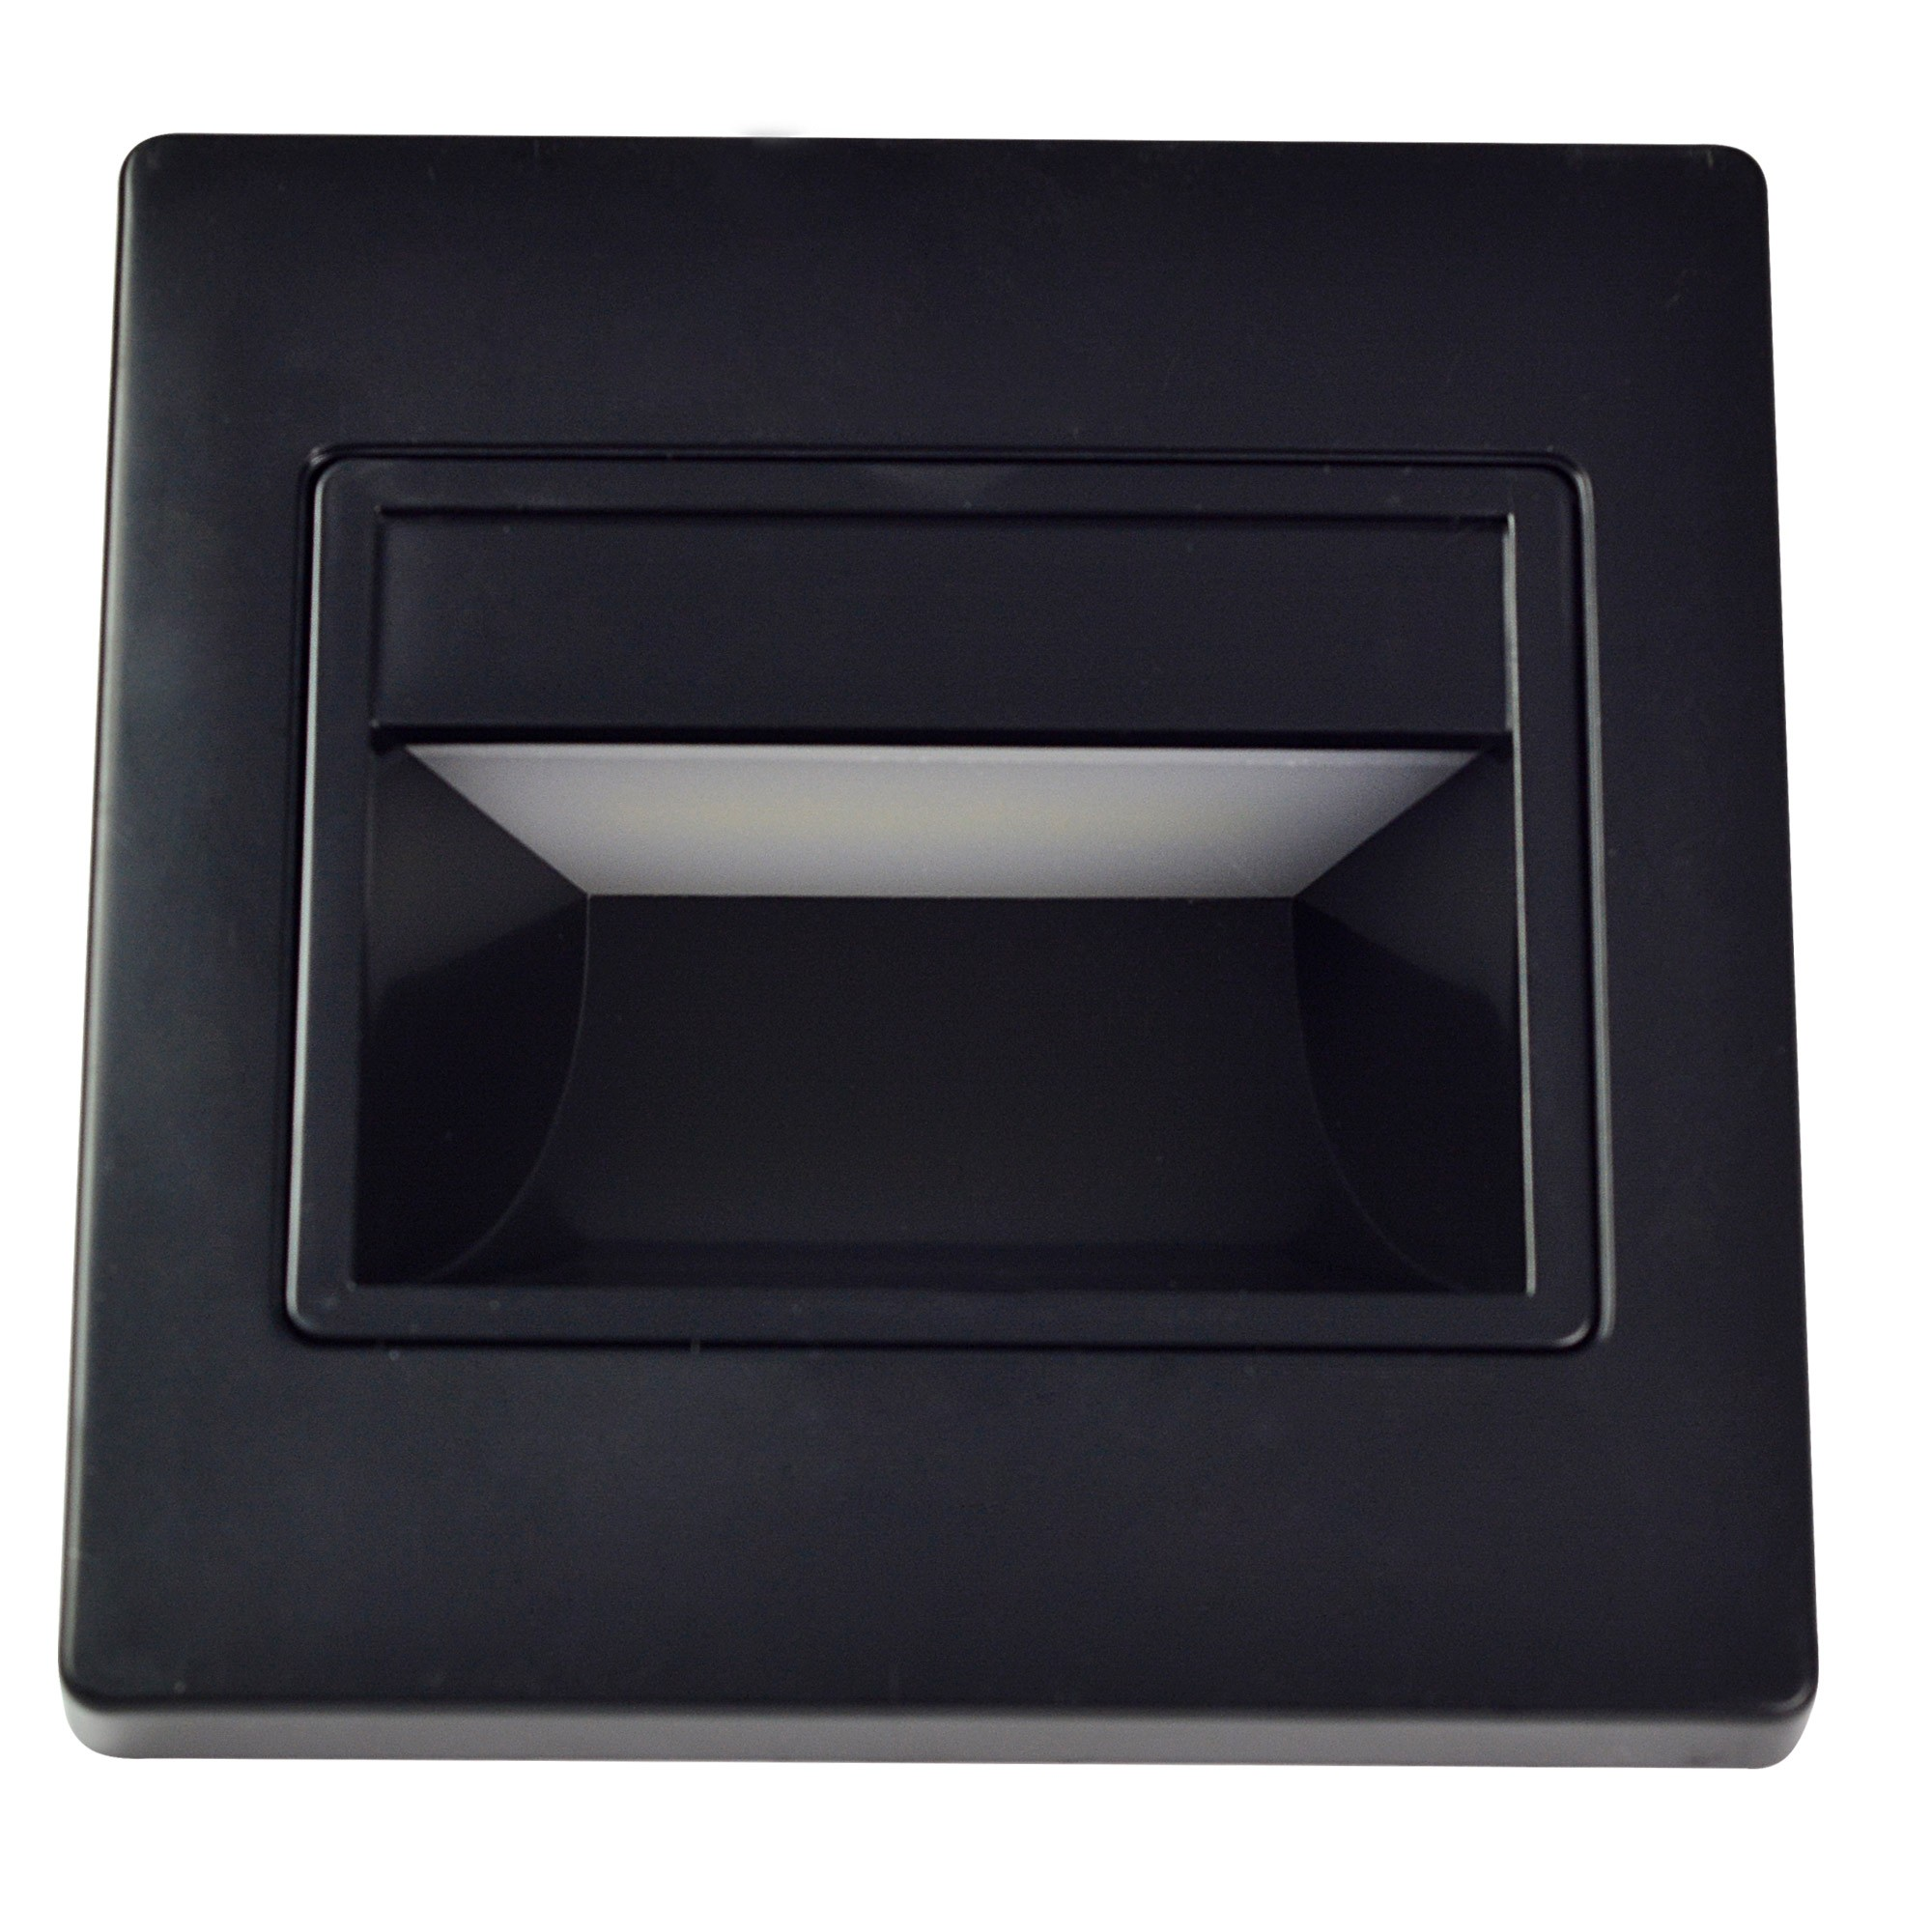 Vega Wall Lamp Black Led 5w : MengsLED MENGS 1.5W LED Wall Step Light 20x 2835 SMD LEDs LED Stair Lamp In Warm White/Cool ...